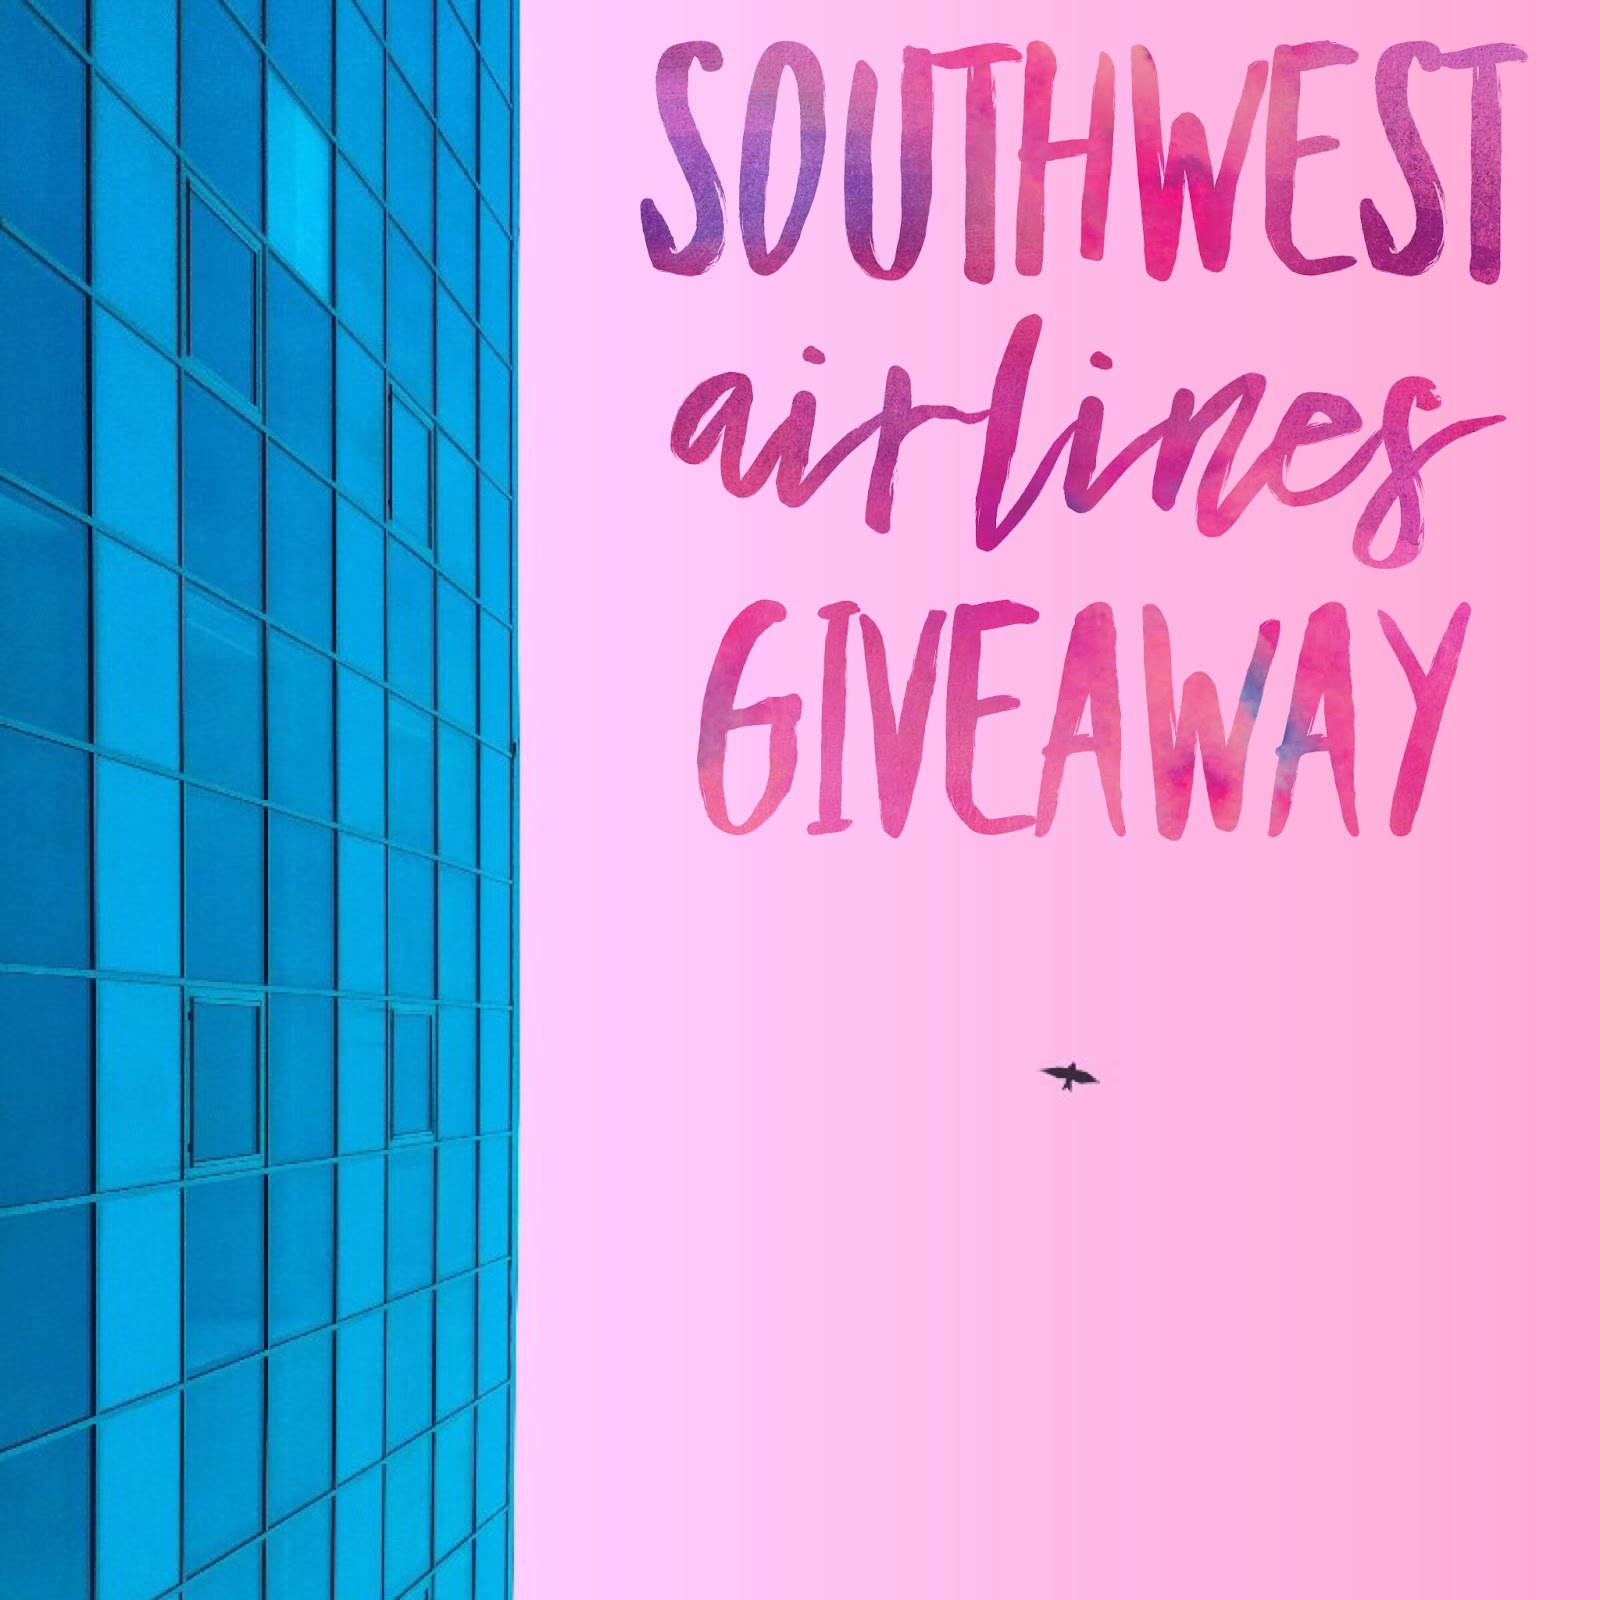 $150 Southwest Airlines Gift Card Giveaway